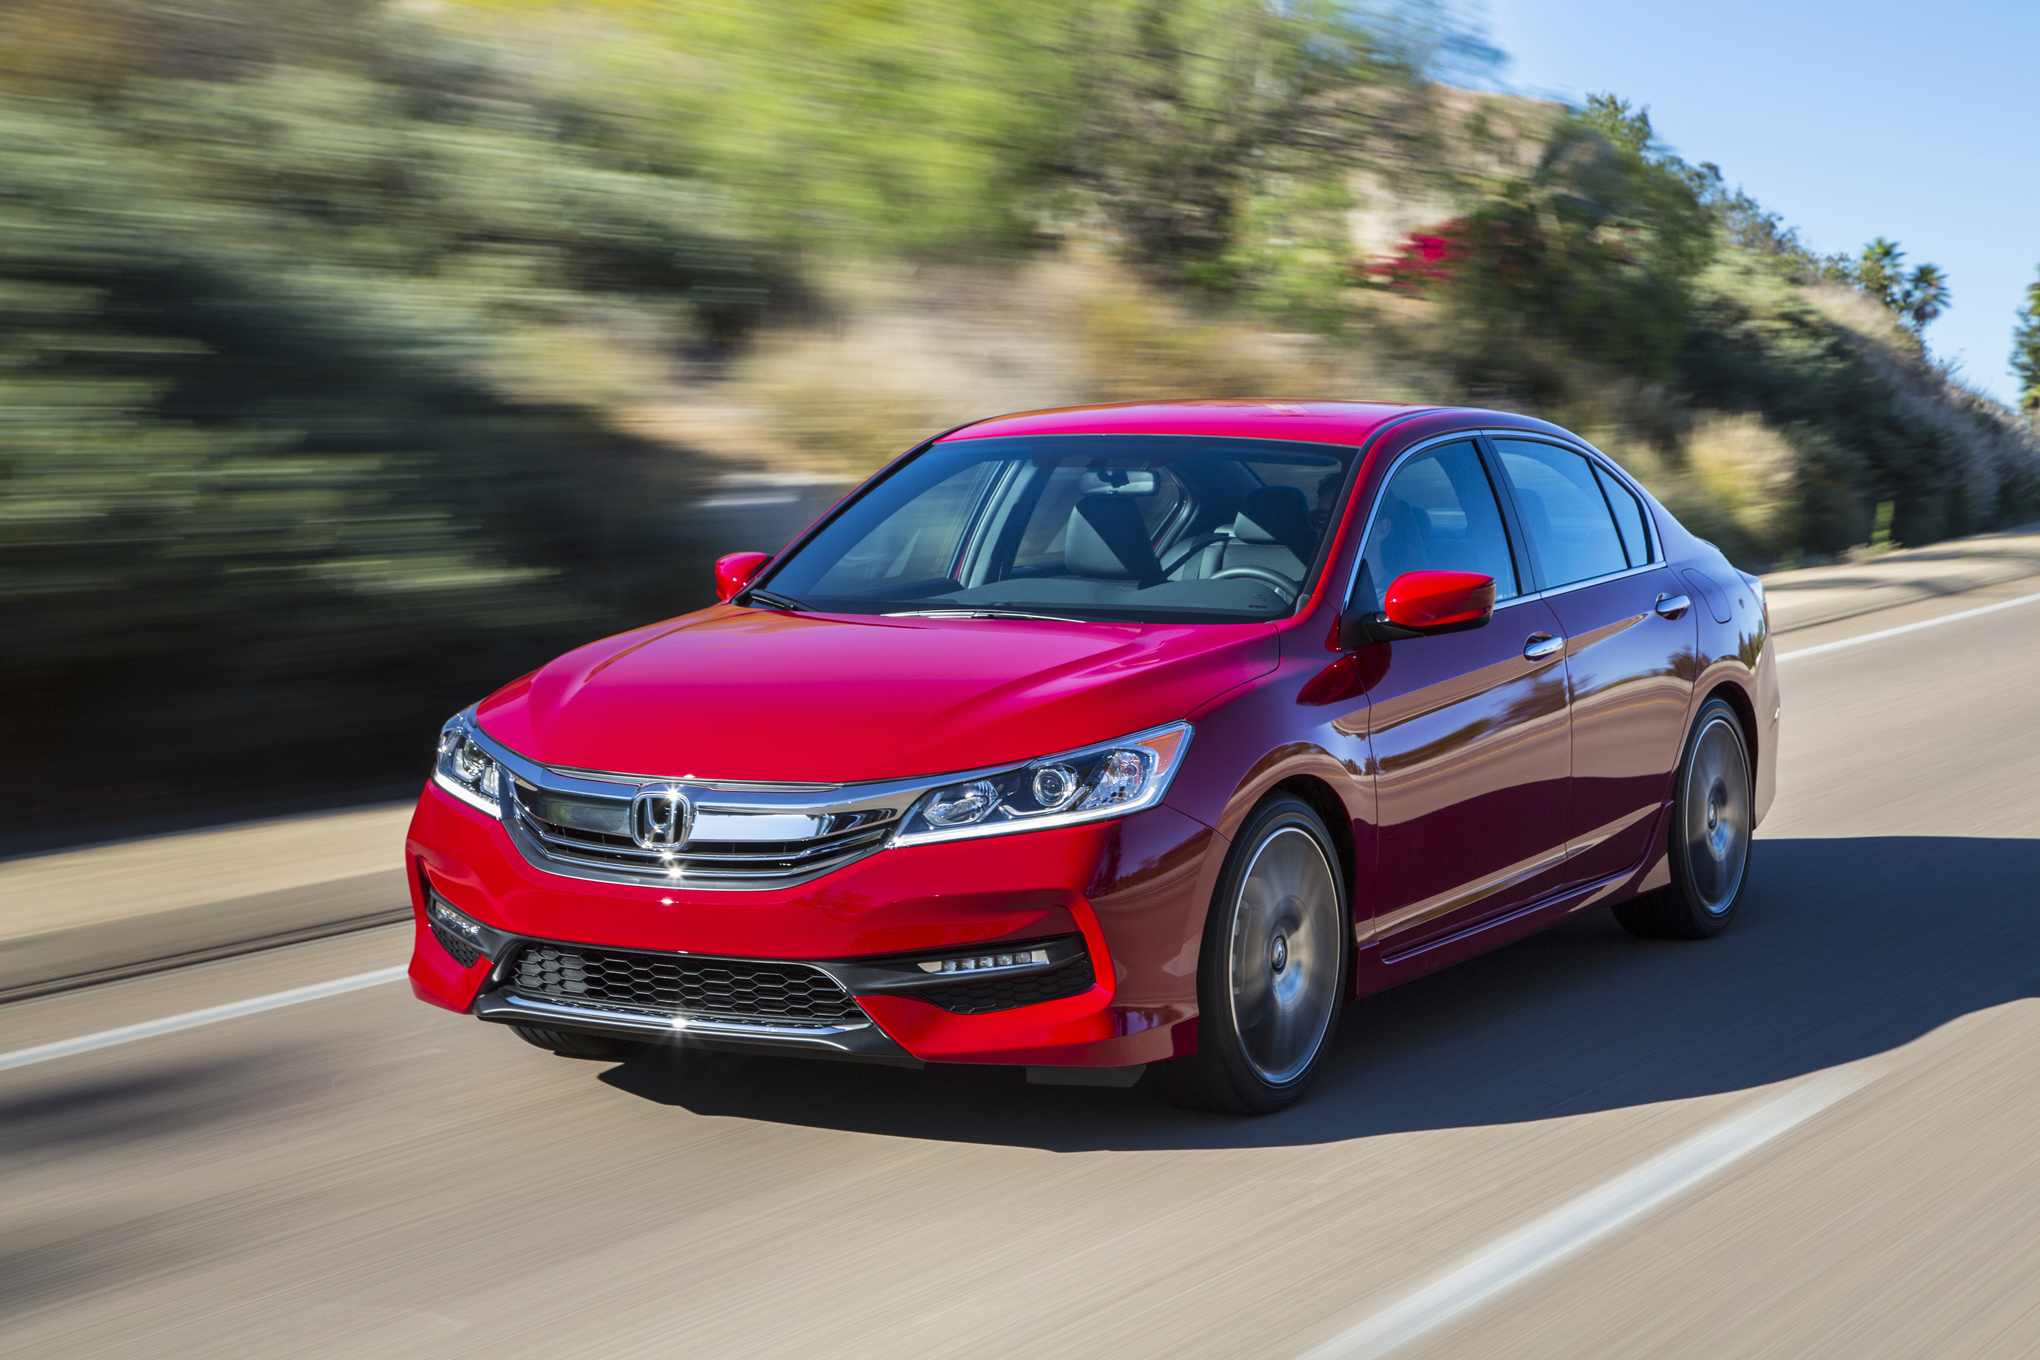 2016 Honda Accord Pictures Gallery (52 Images)